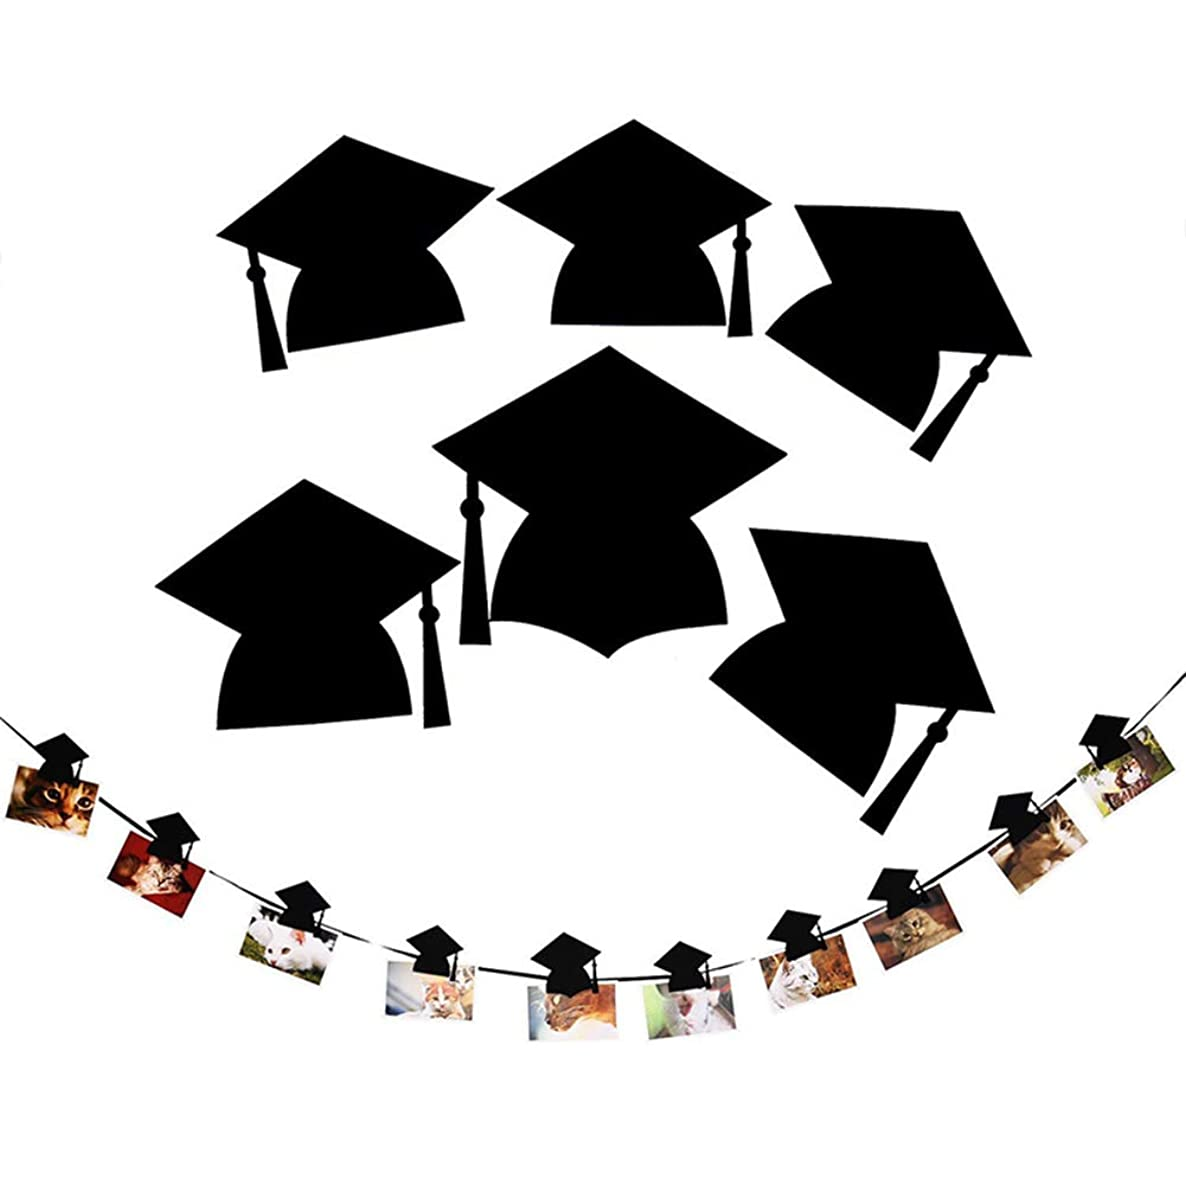 Alina Graduation Hat Shaped Photo Banner for Graduate Party Decoration, 3 Meters Bunting Garland Photo Props Backdrop with Clips